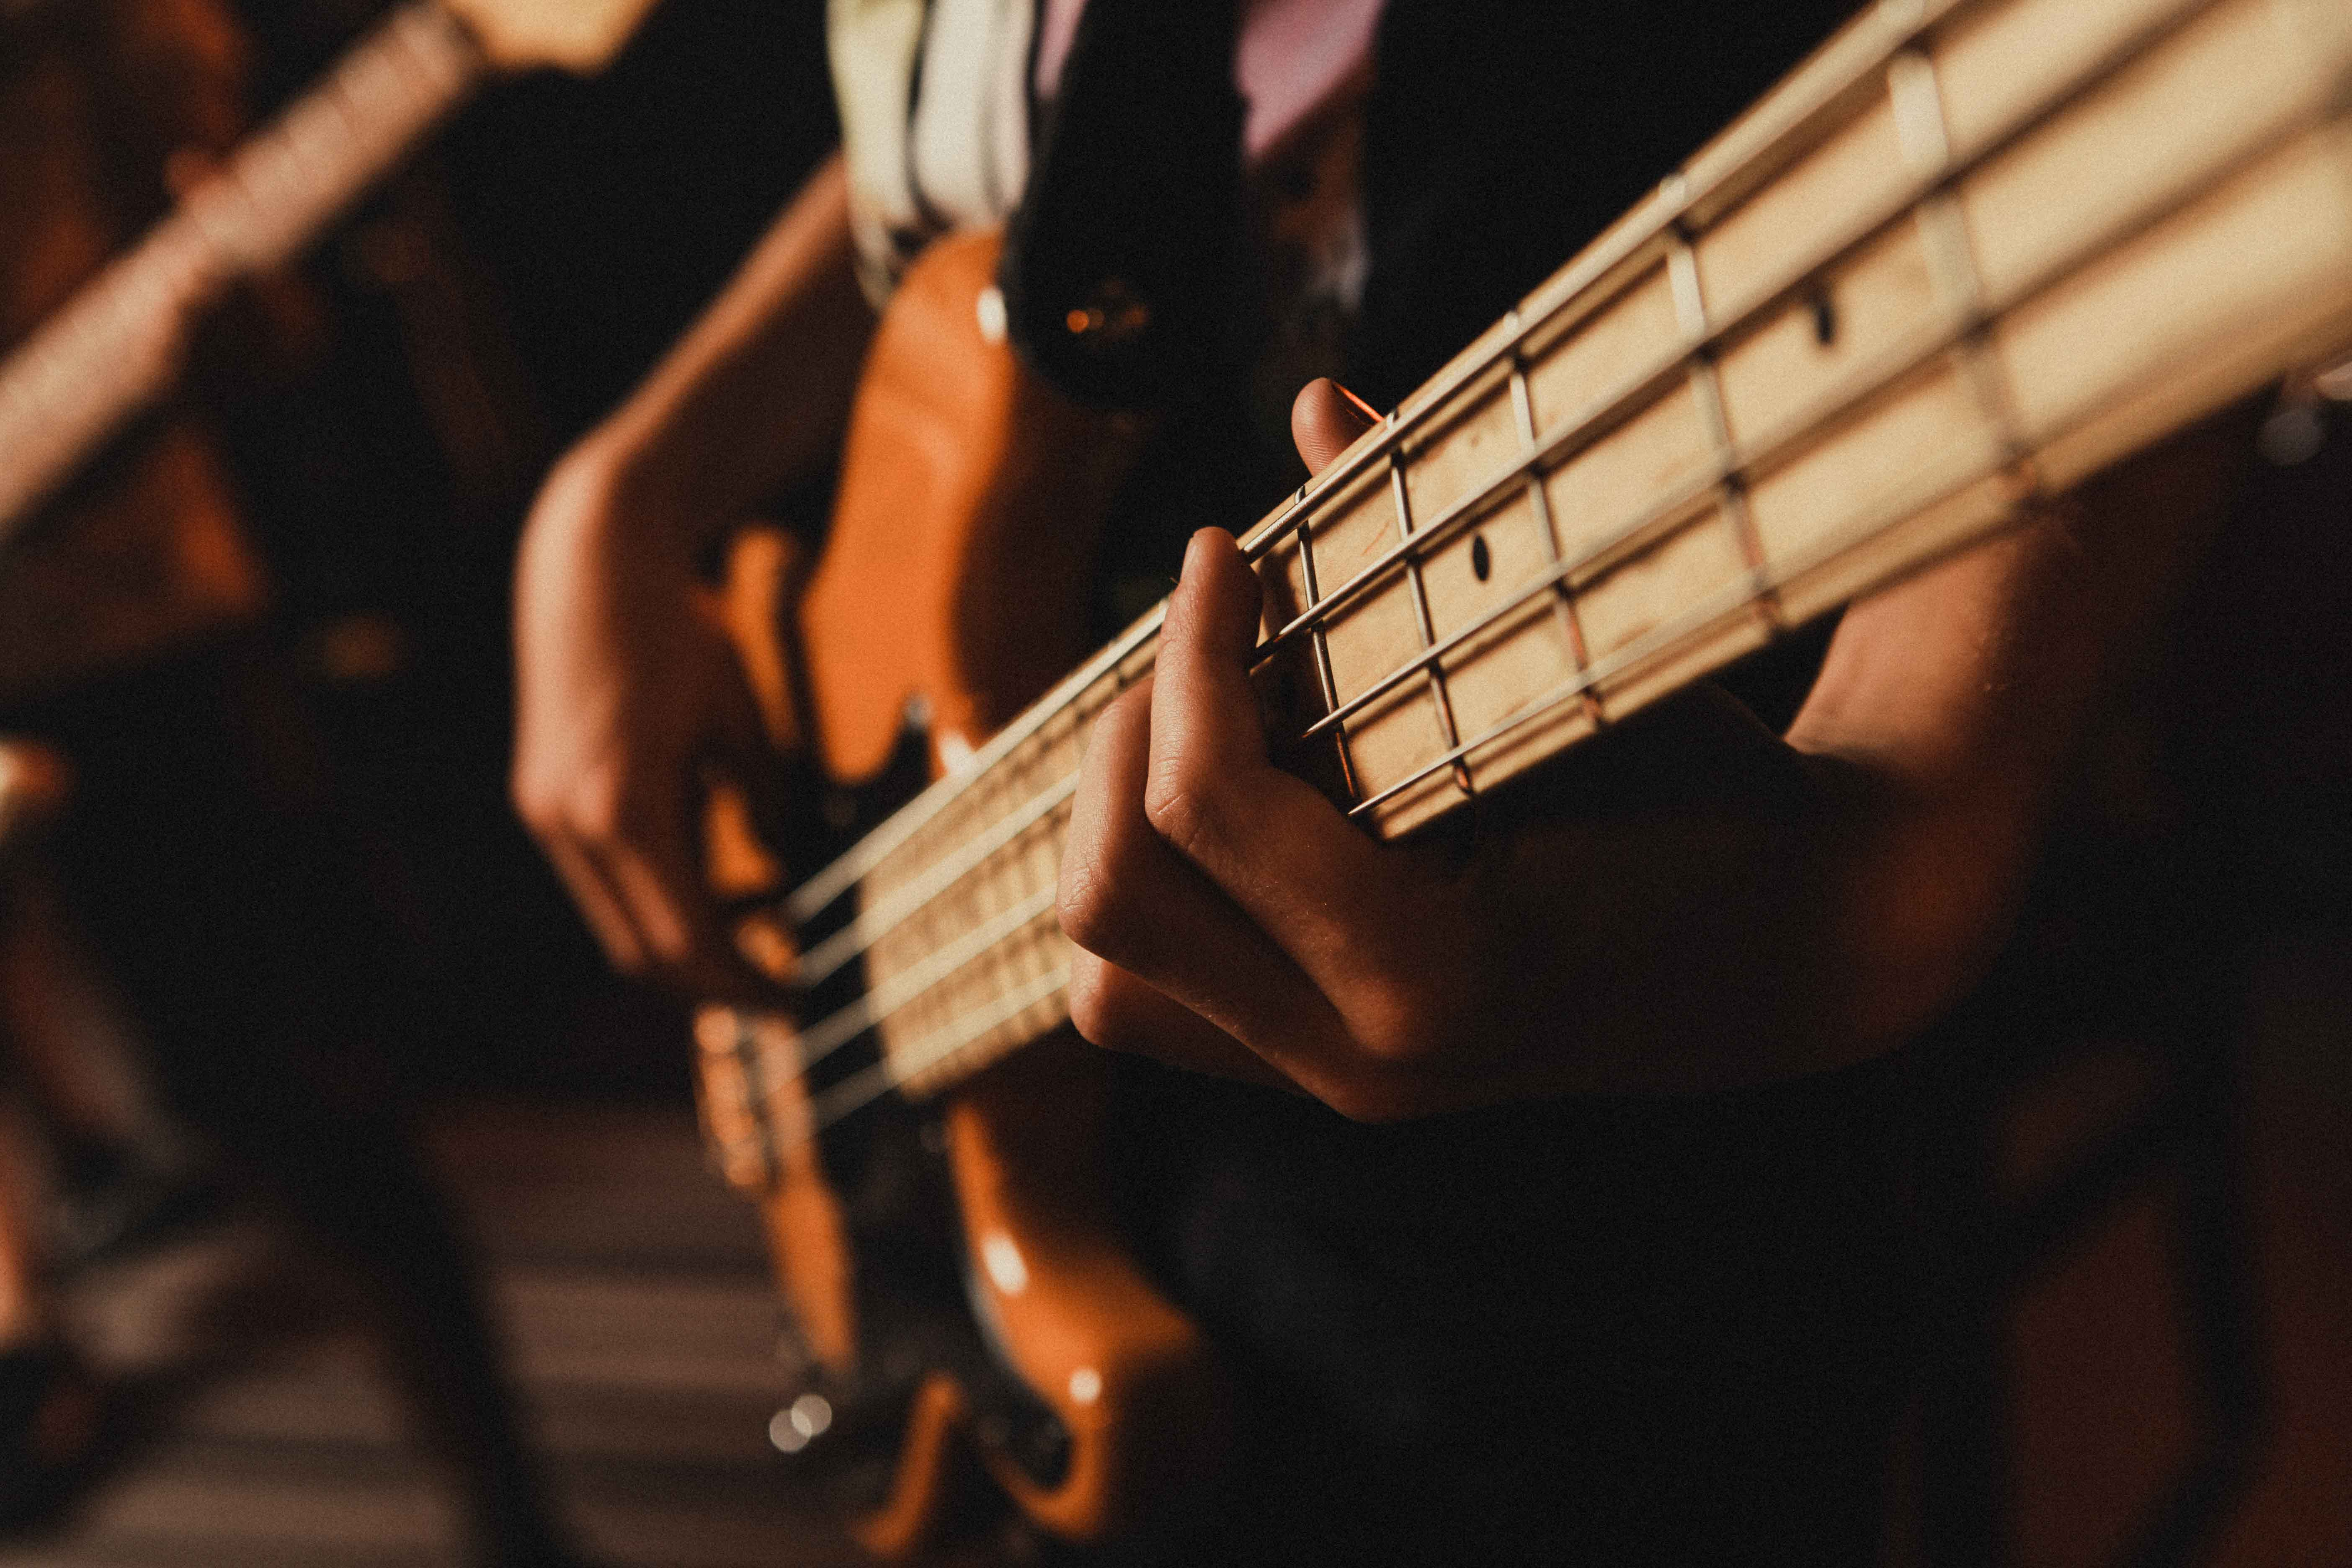 Close-up of fingers pressing notes on a bass guitar